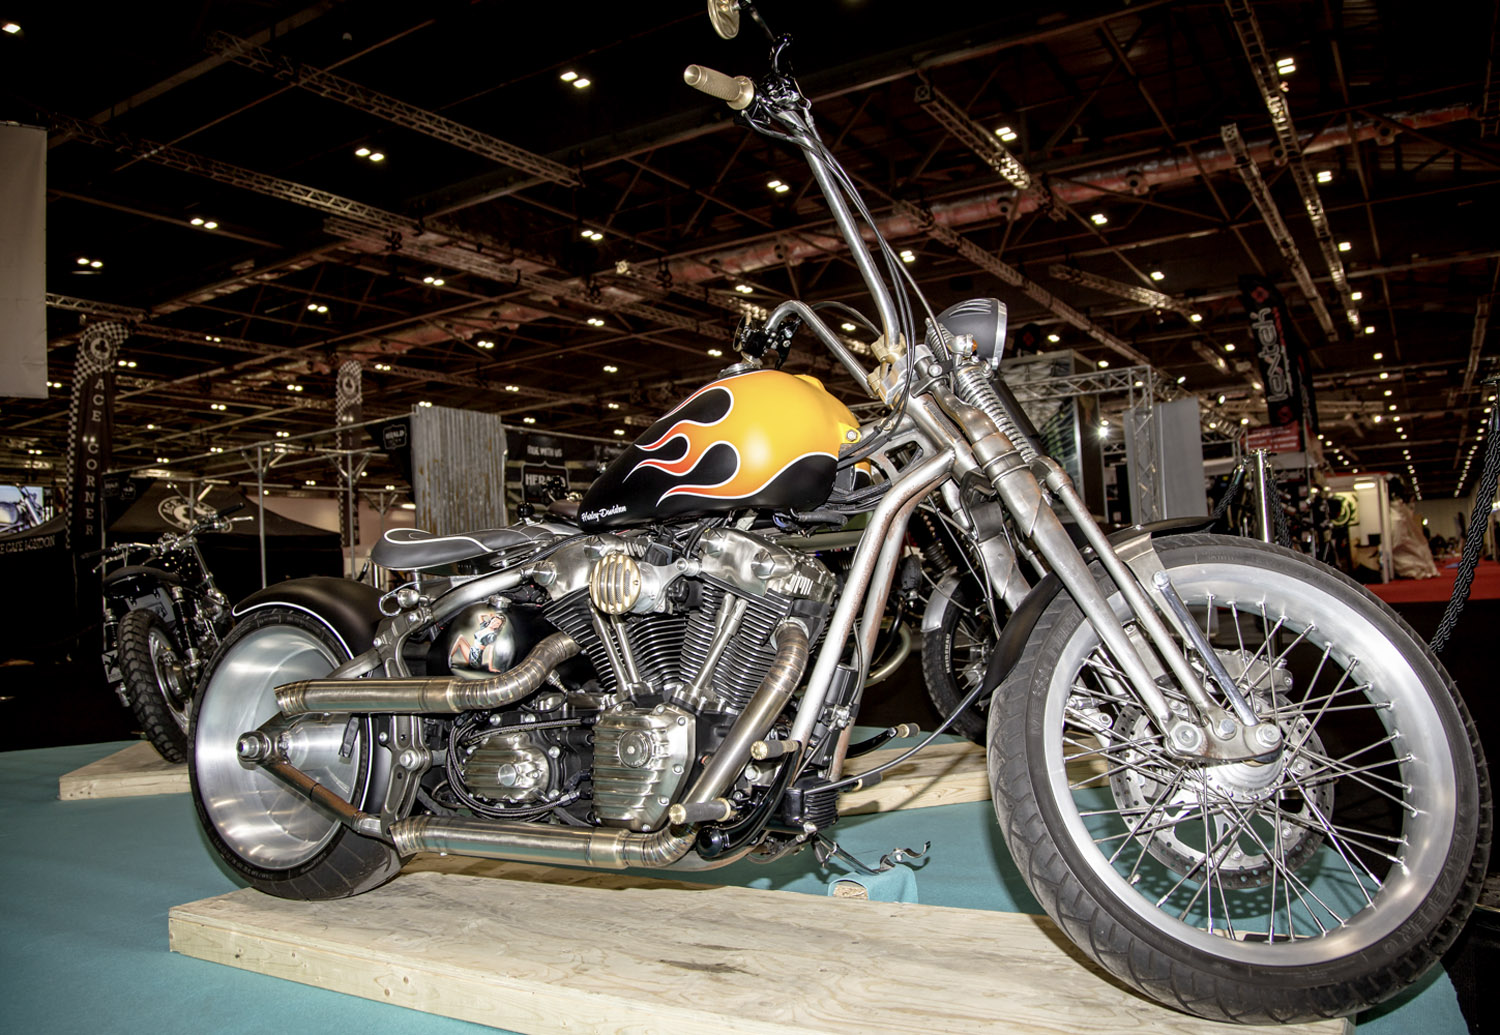 Warr's Harley-Davidson - Patti Breakout By Charlie Stockwell